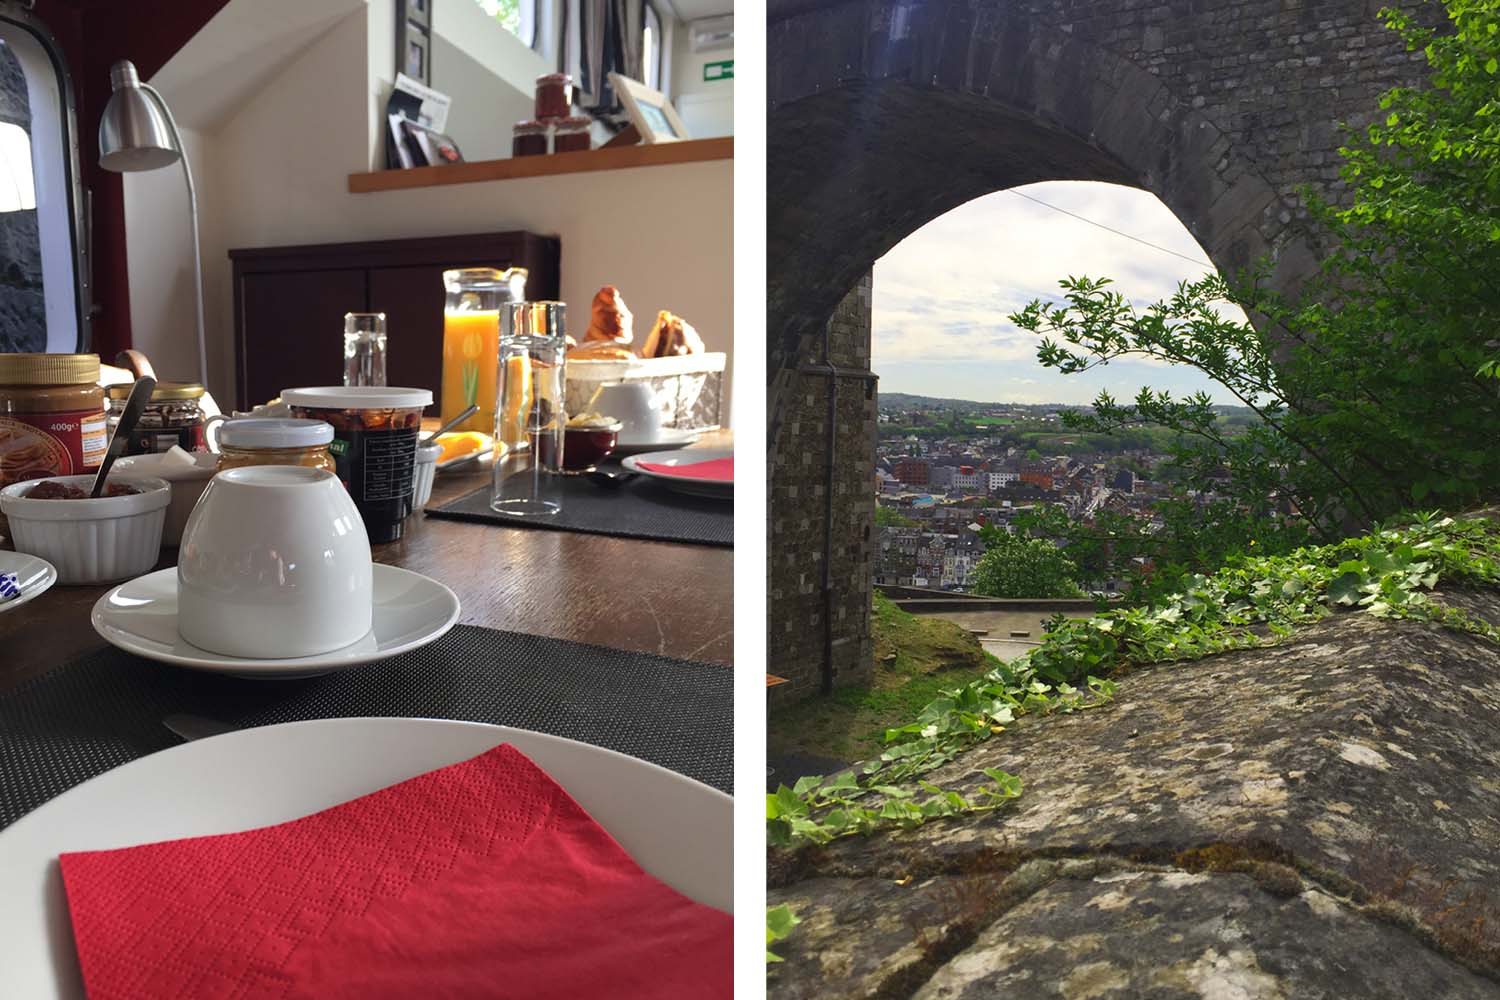 A delicious breakfast followed by a walk to the Citadel of Namur